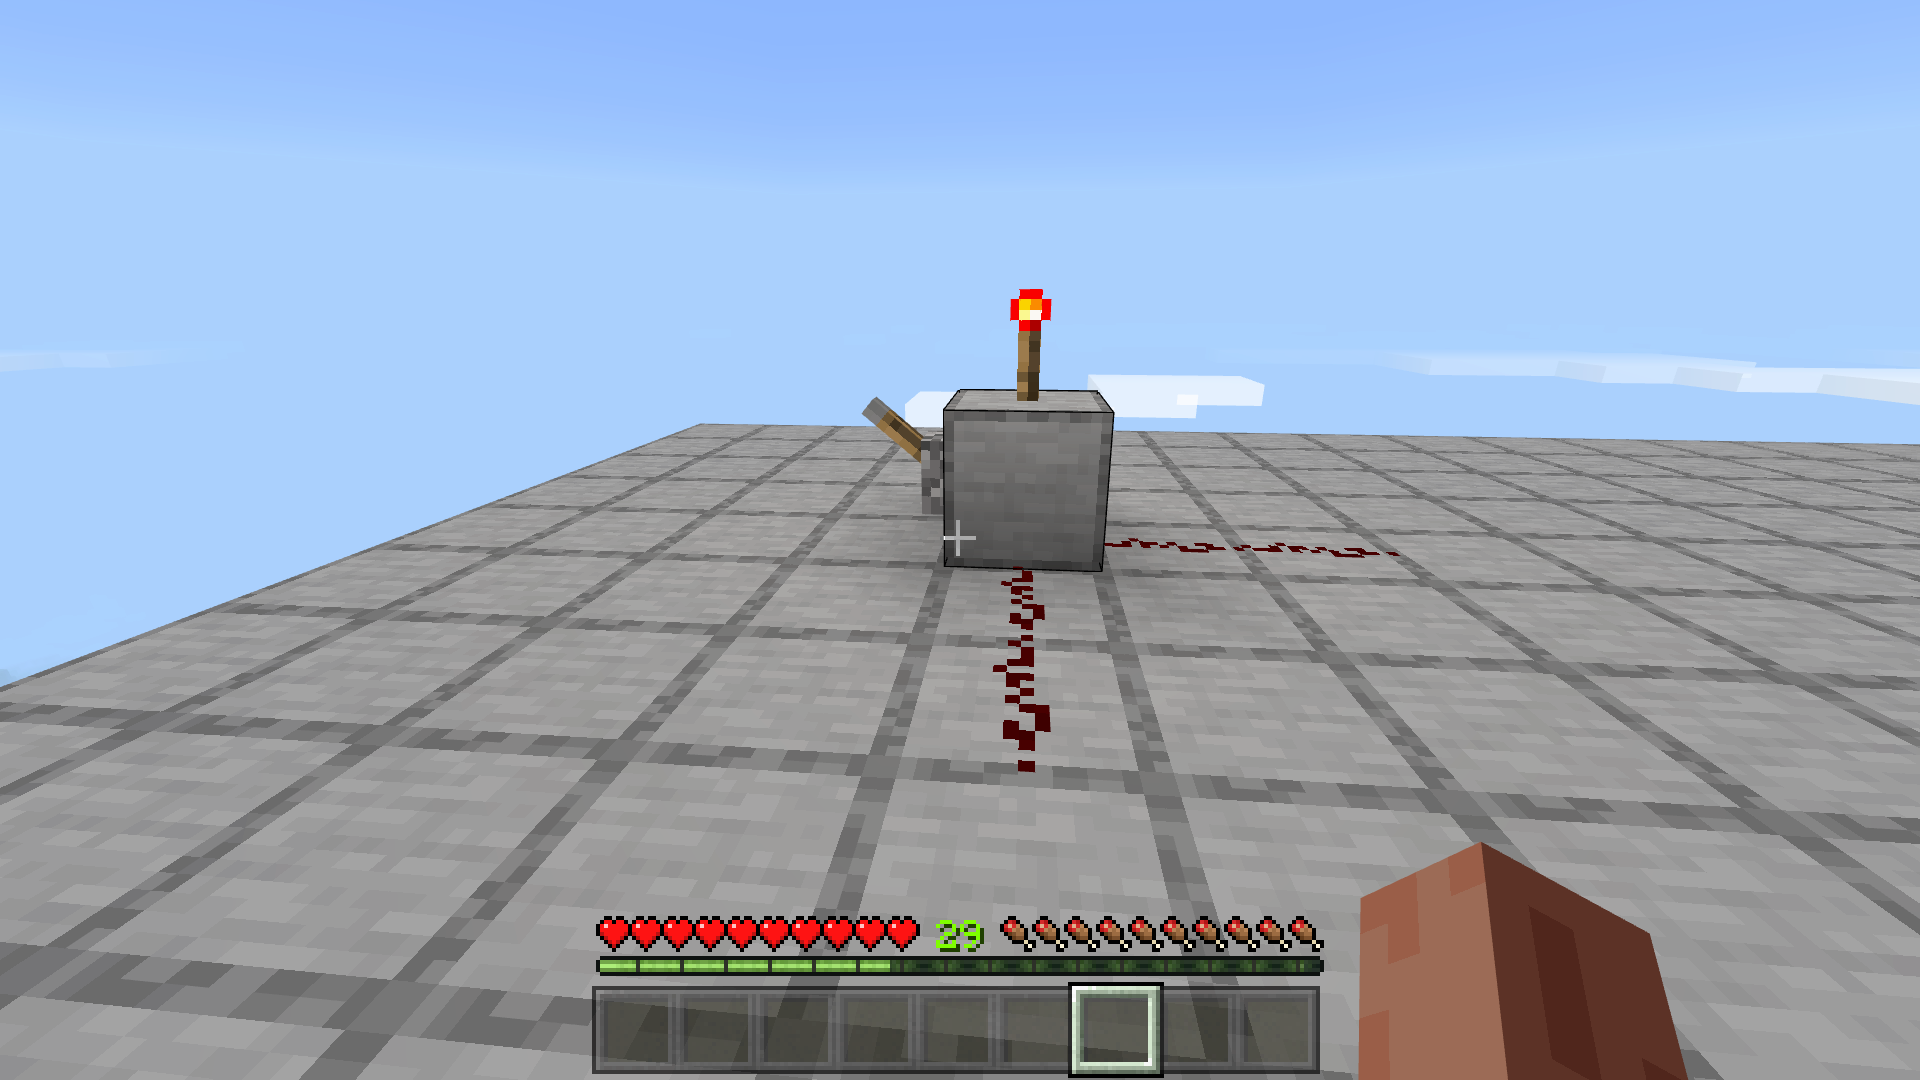 How To Turn Off Redstone Torches In Minecraft